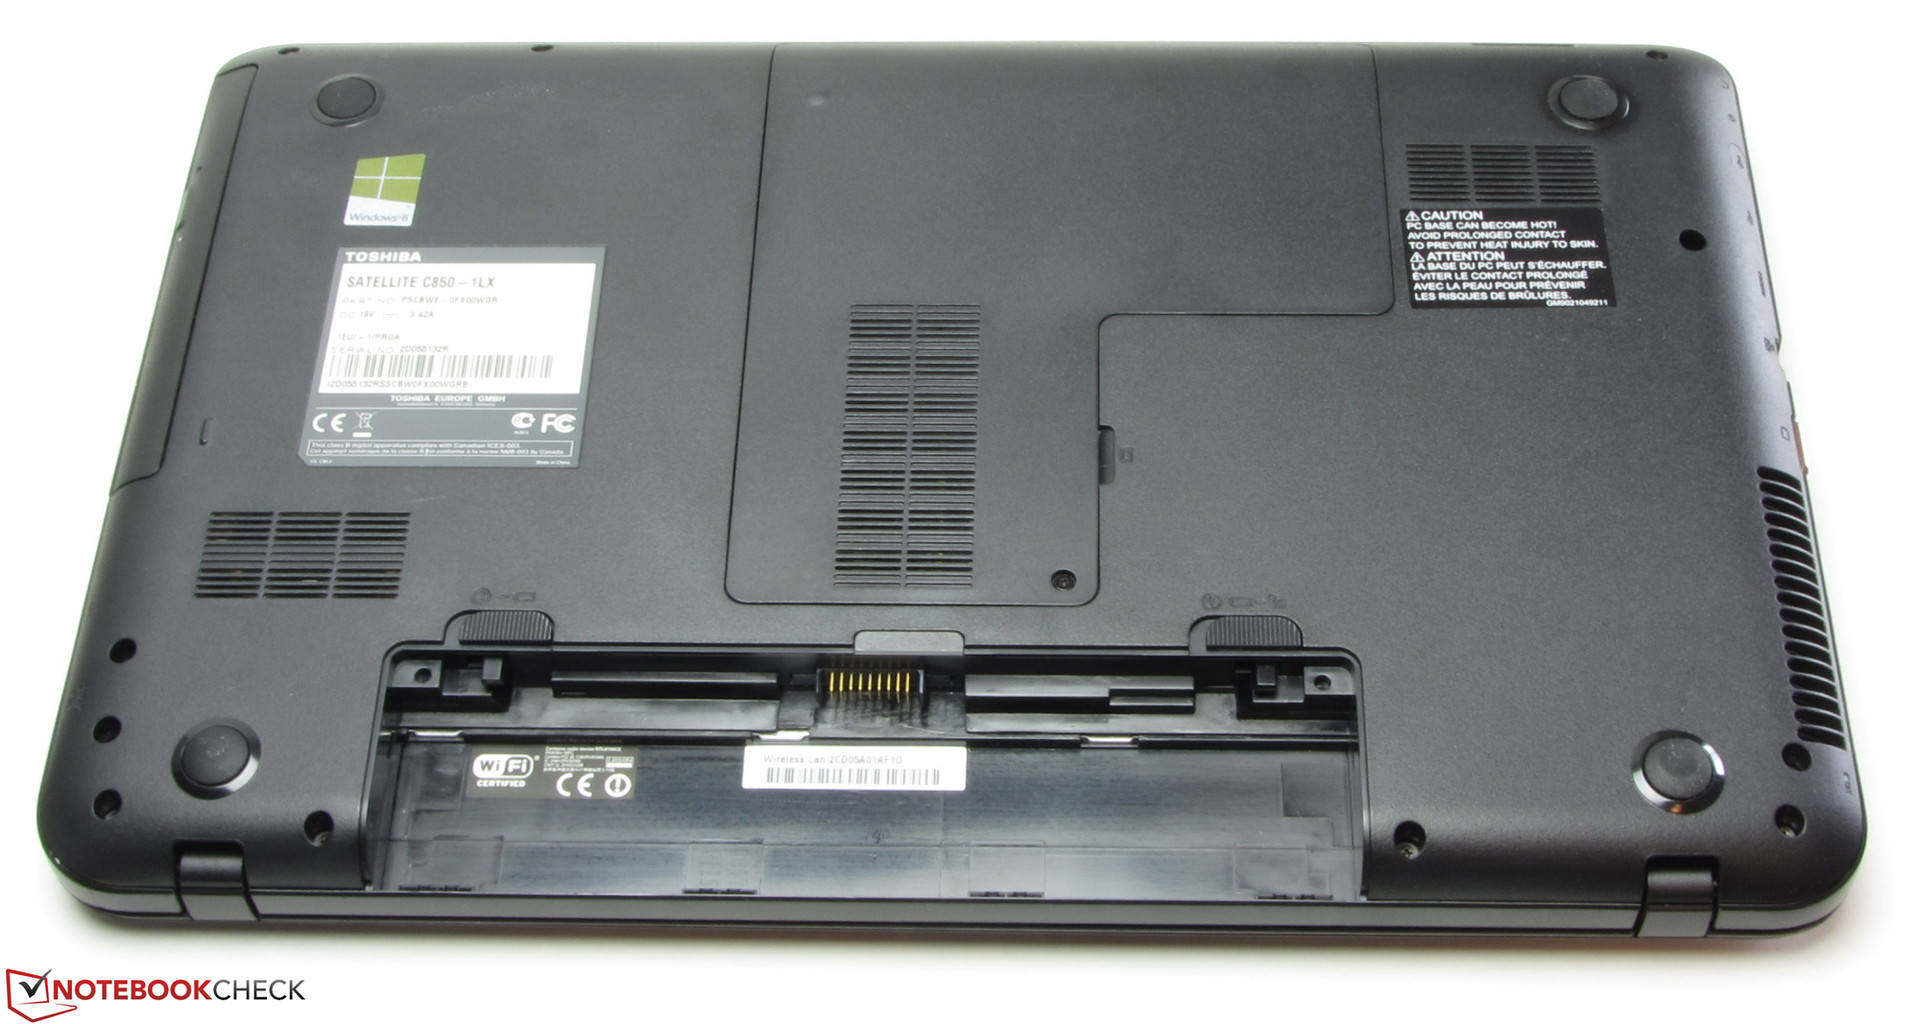 TOSHIBA SATELLITE C850-B SYSTEM TREIBER WINDOWS 7